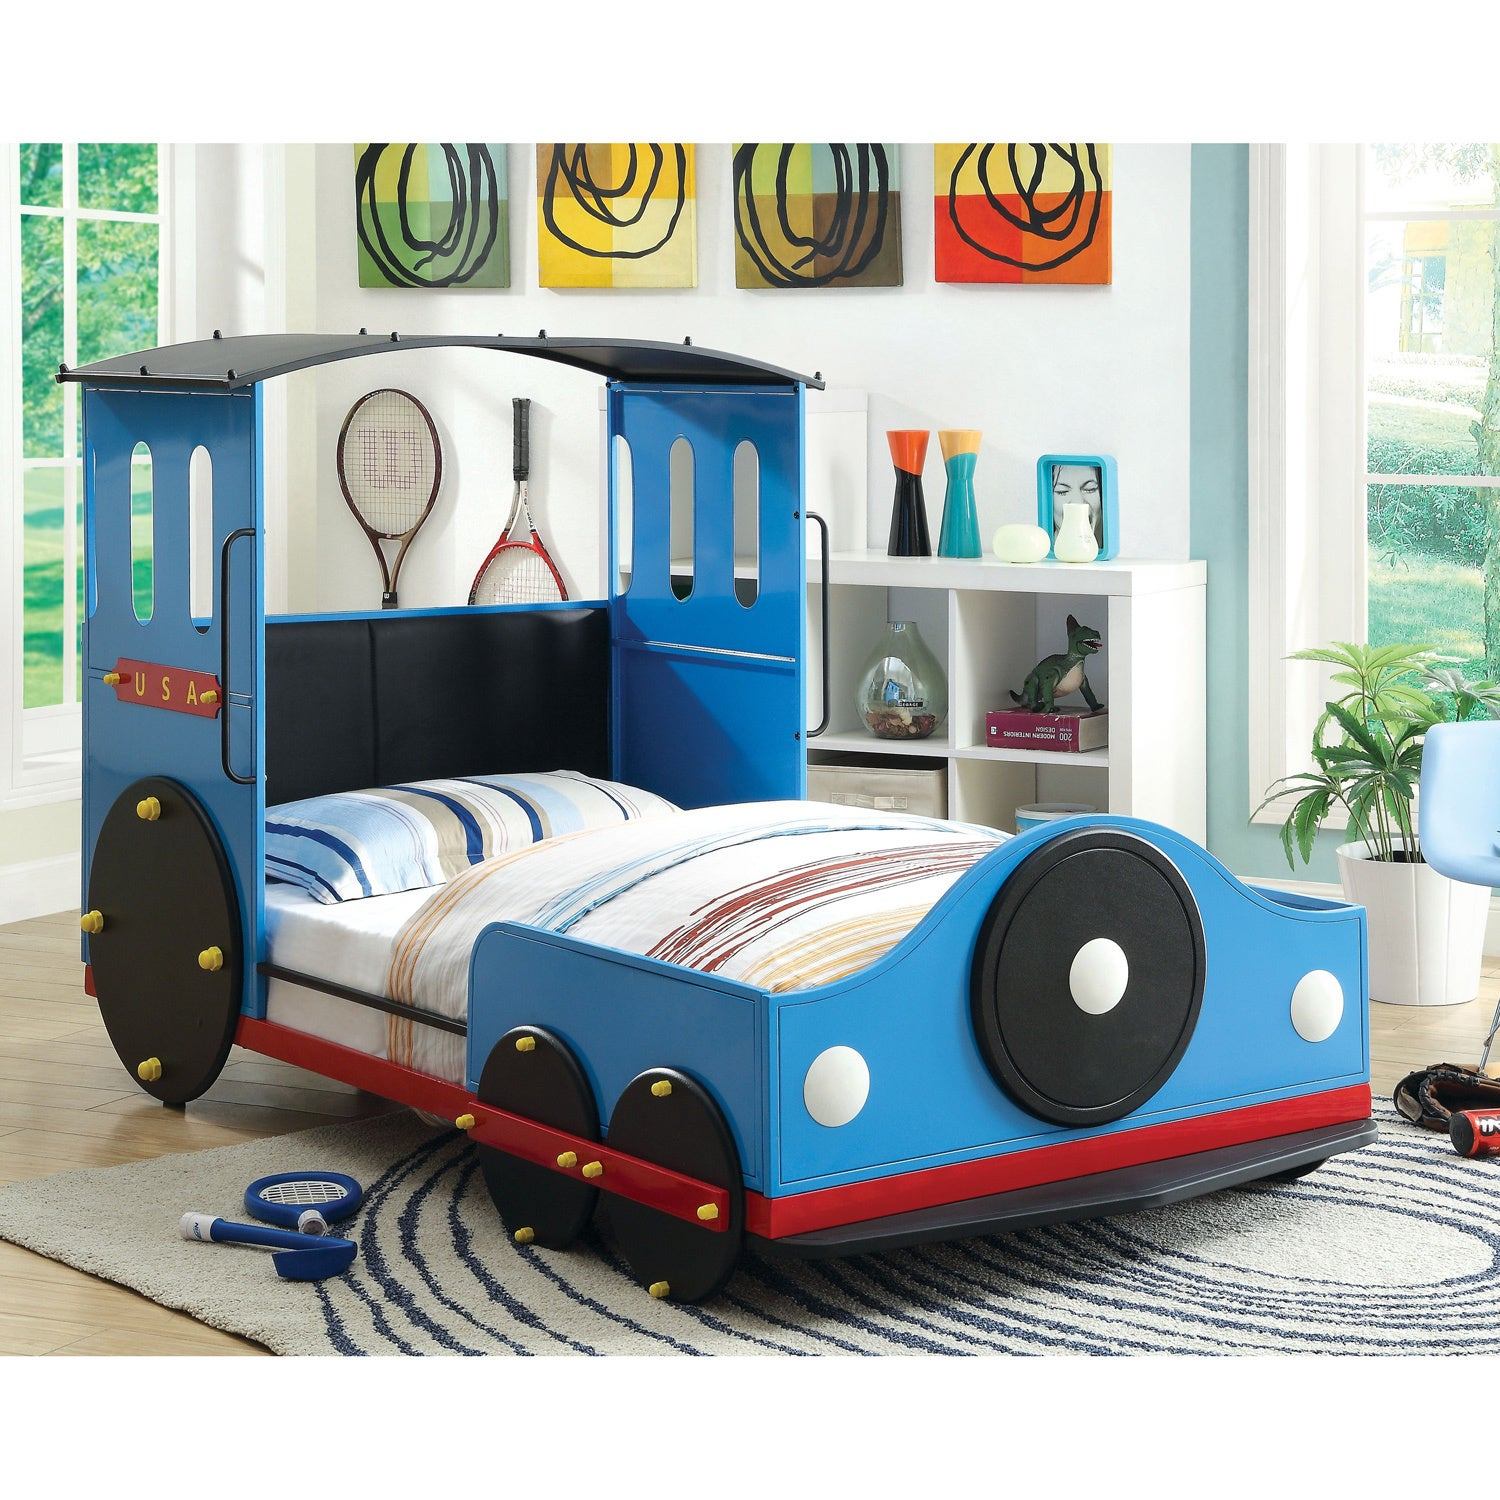 Furniture of America Train Locomotive Metal Youth Bed - Free Shipping Today  - Overstock.com - 16356216